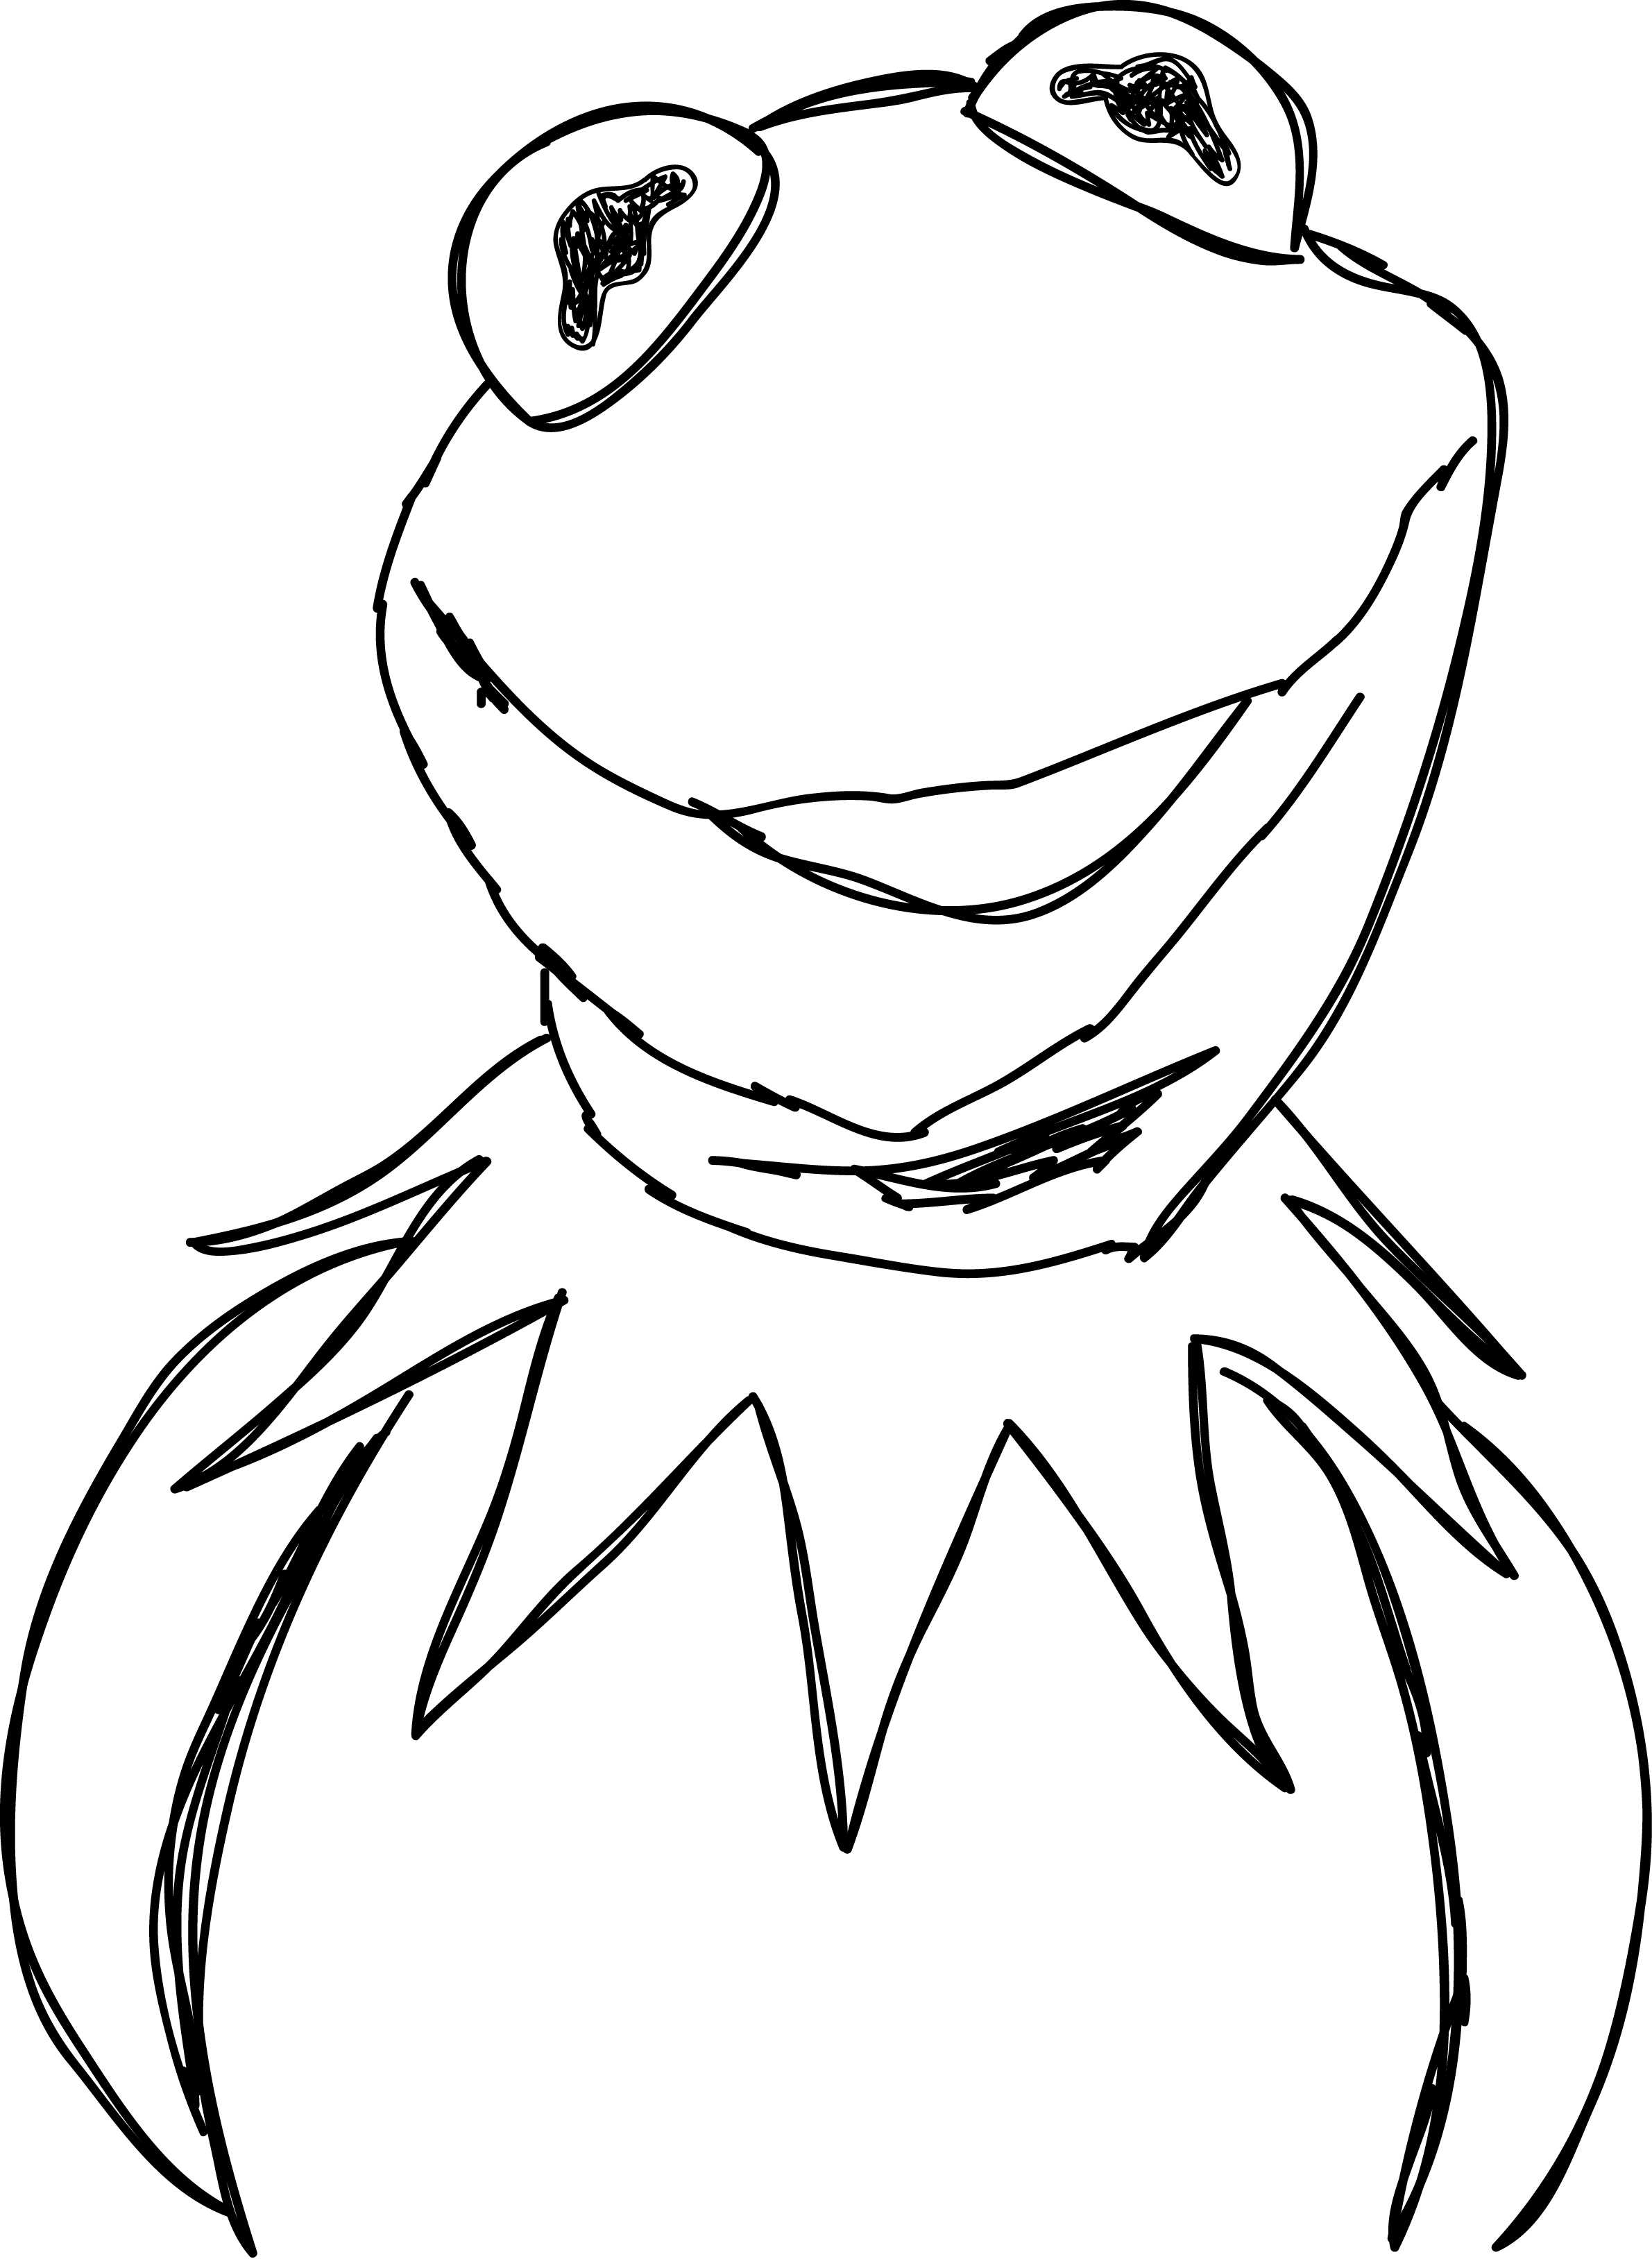 how to draw kermit the frog kermit the frog drawing at getdrawings free download frog how the kermit draw to